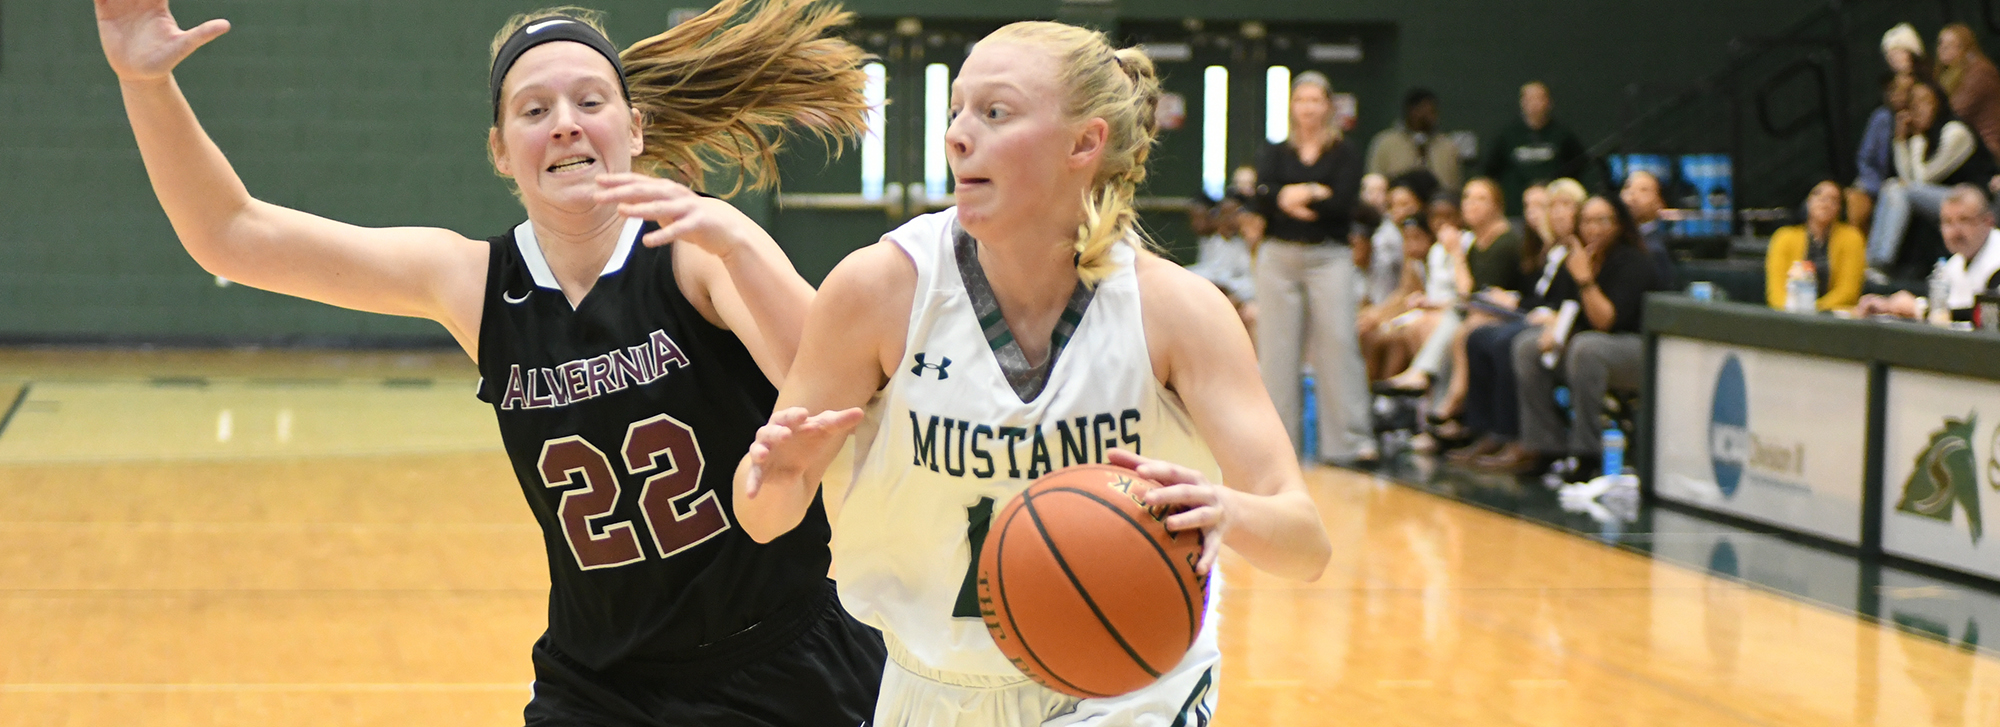 No. 22 Messiah Holds Off Second Half Mustang Challenge